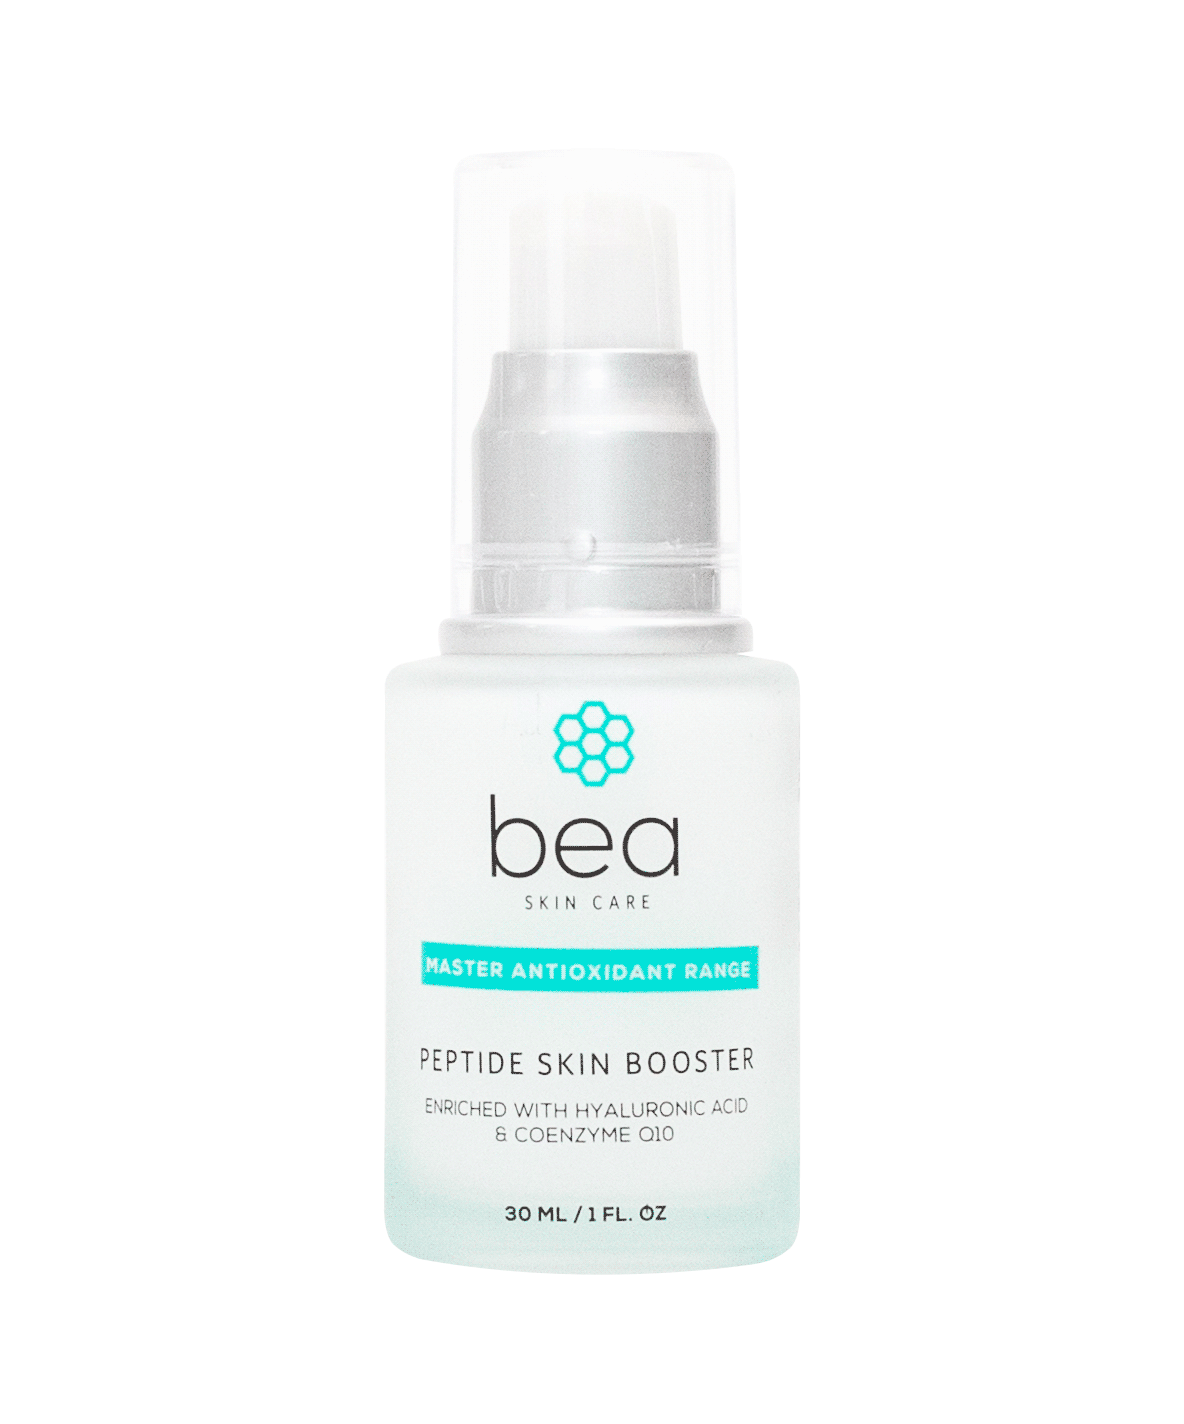 Peptide Skin Booster - 30 ml Face Serum bea Skin Care